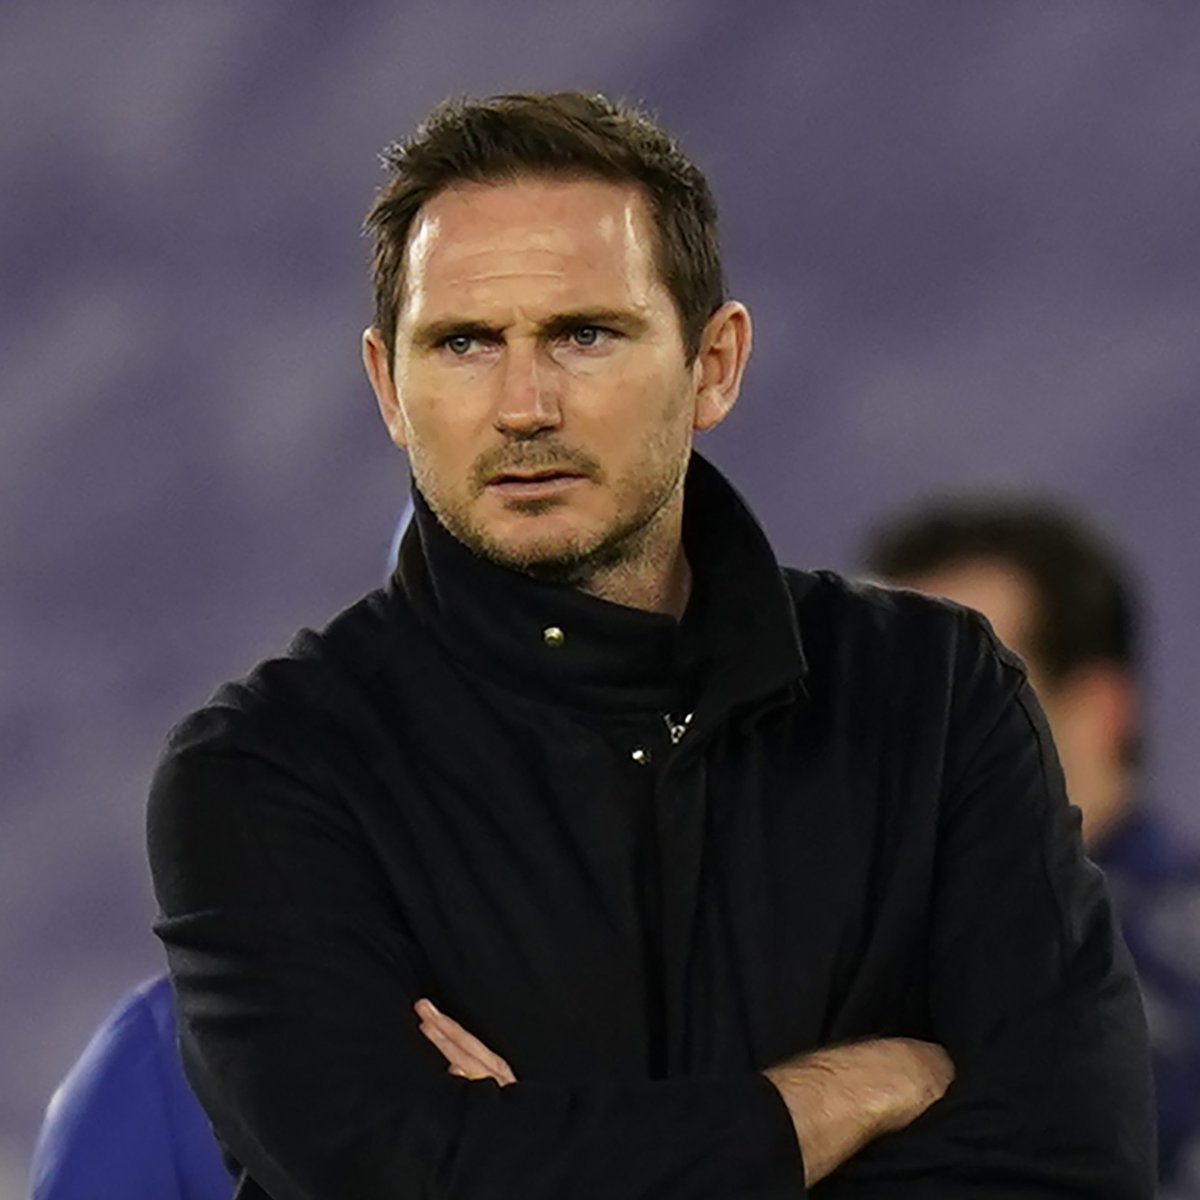 LAMPARD BREAKS SILENCE SINCE CHELSEA SACK